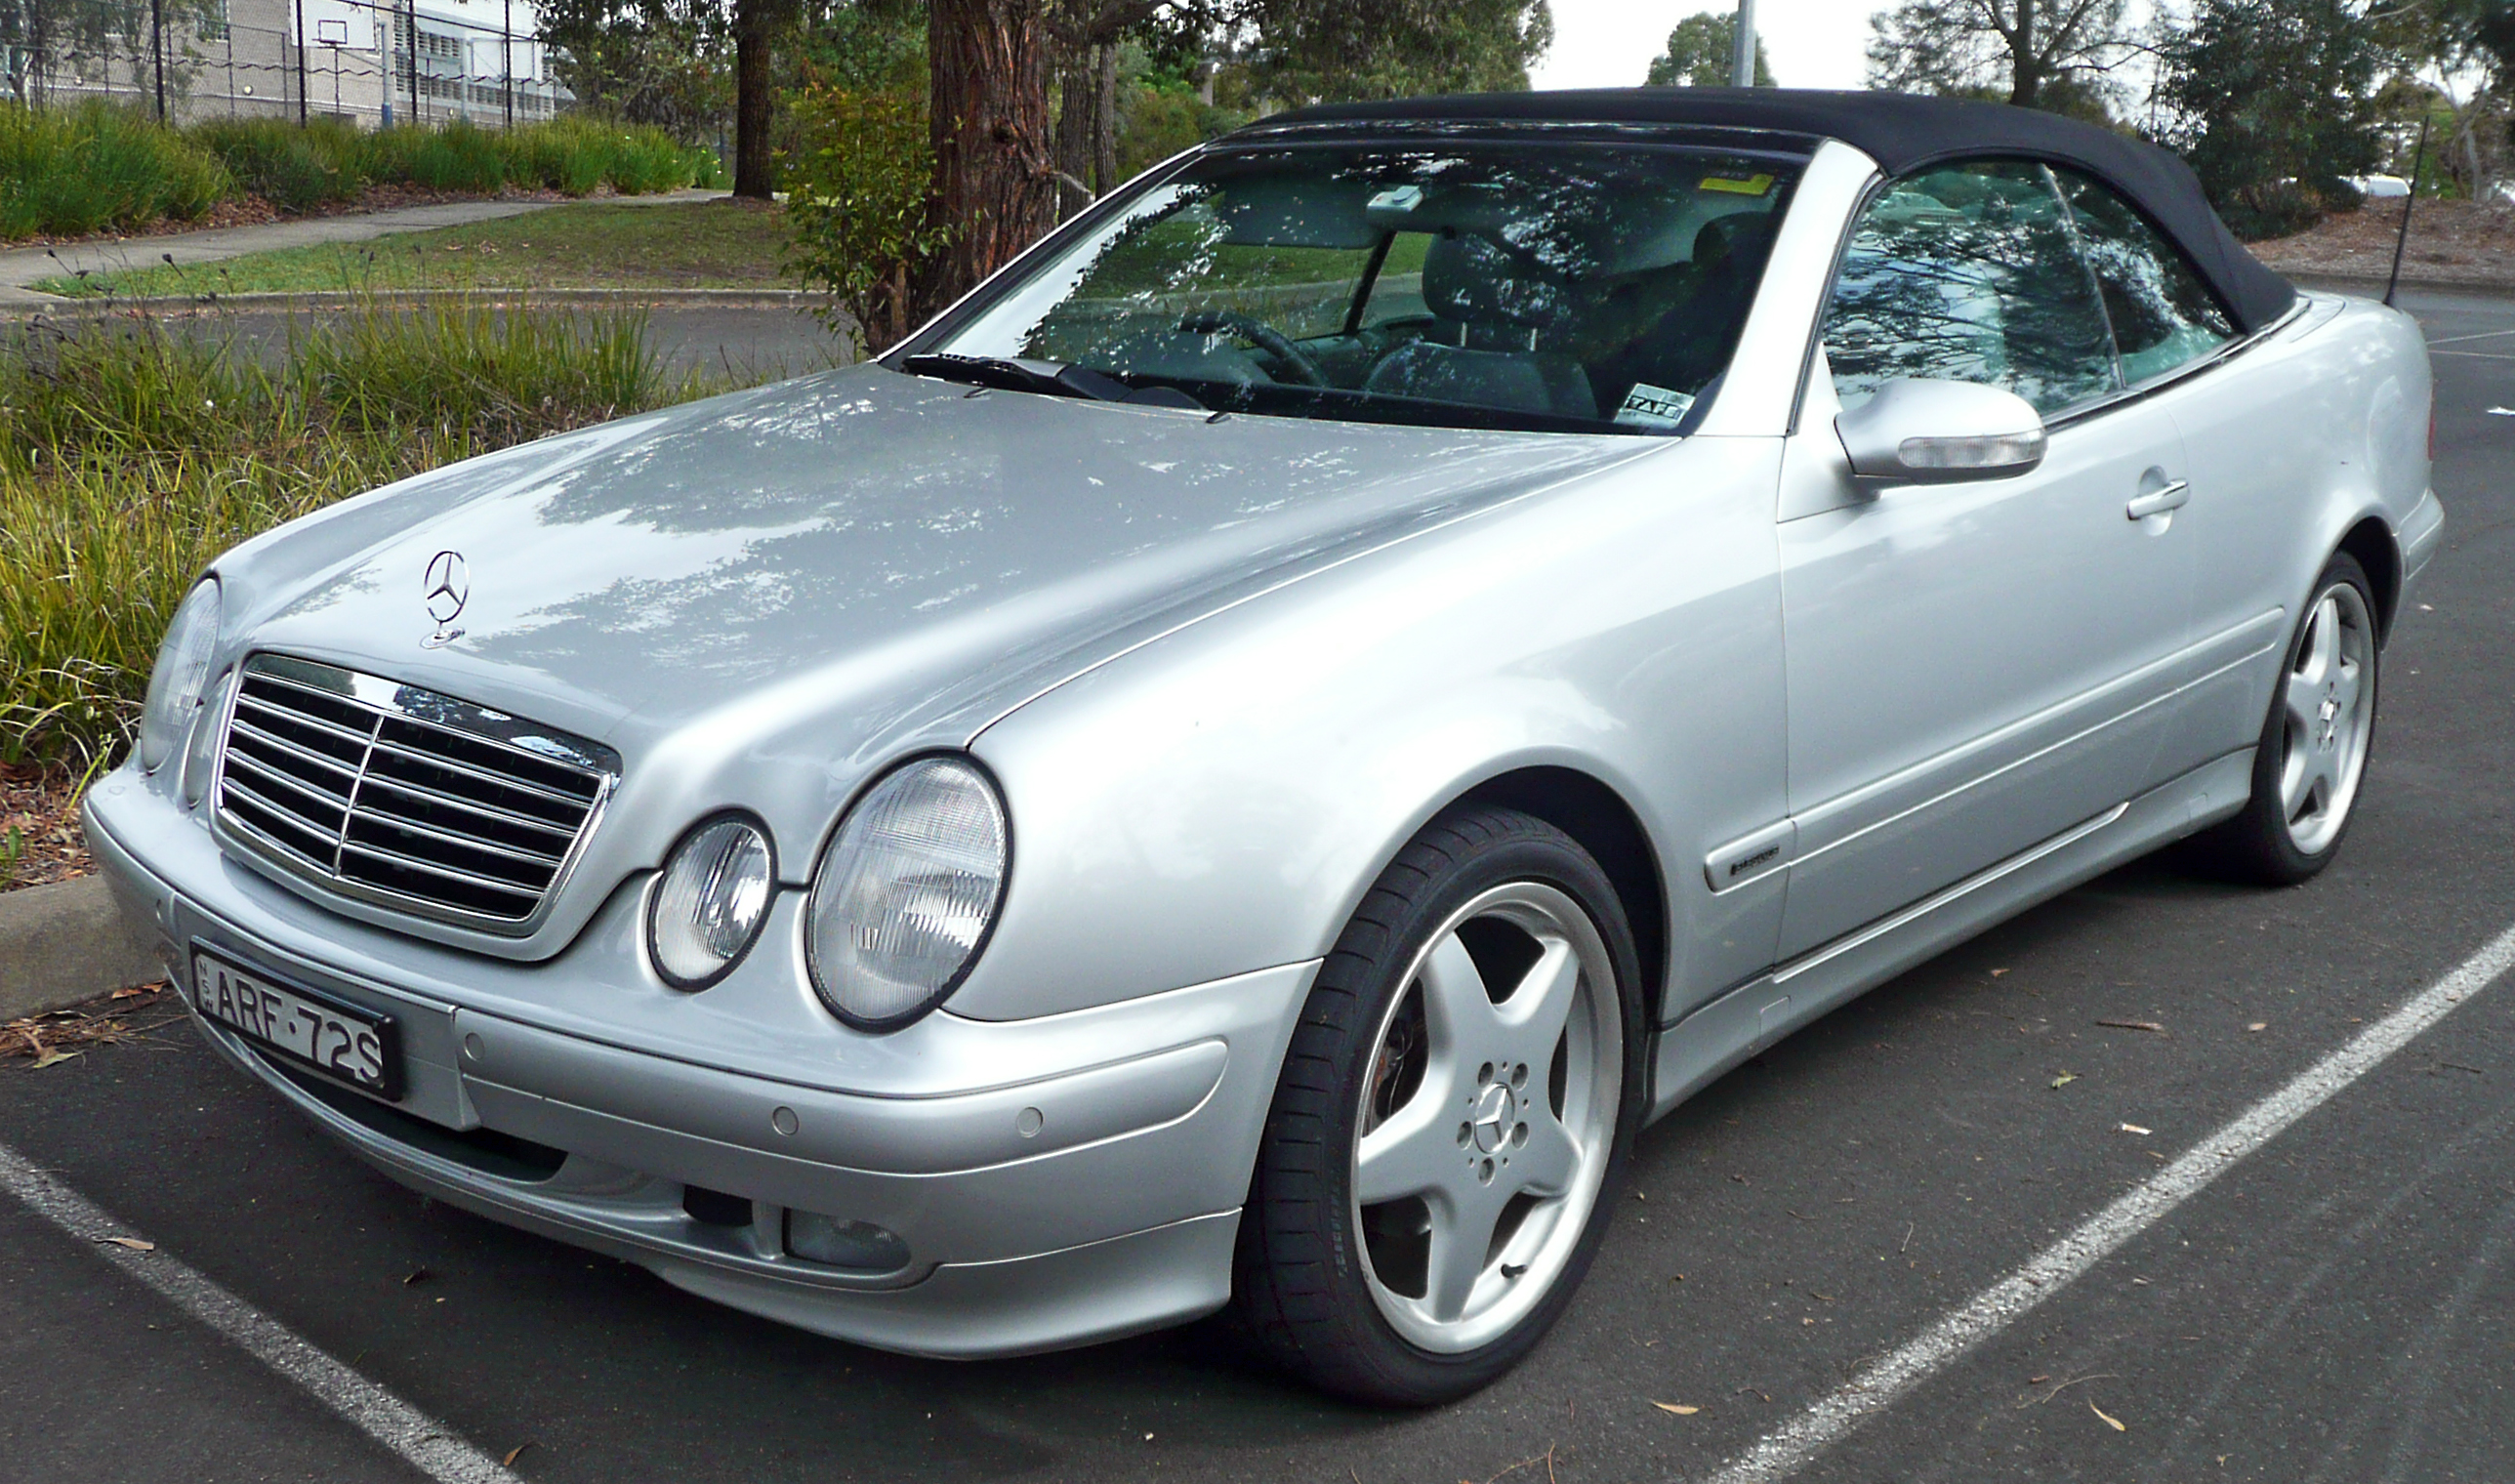 2001 Mercedes Benz Clk Class Pictures C6153 pi35927084 together with 465073 Any Difference Exterior Between 320 430 A besides Ec1d4639b3679a36 1999 Mercedes Benz Clk 320 Convertible In Brilliant Silver moreover Wallpaper 01 further 2003 Mercedes Benz Clk Class Pictures C6120. on 2000 mercedes clk430 convertible